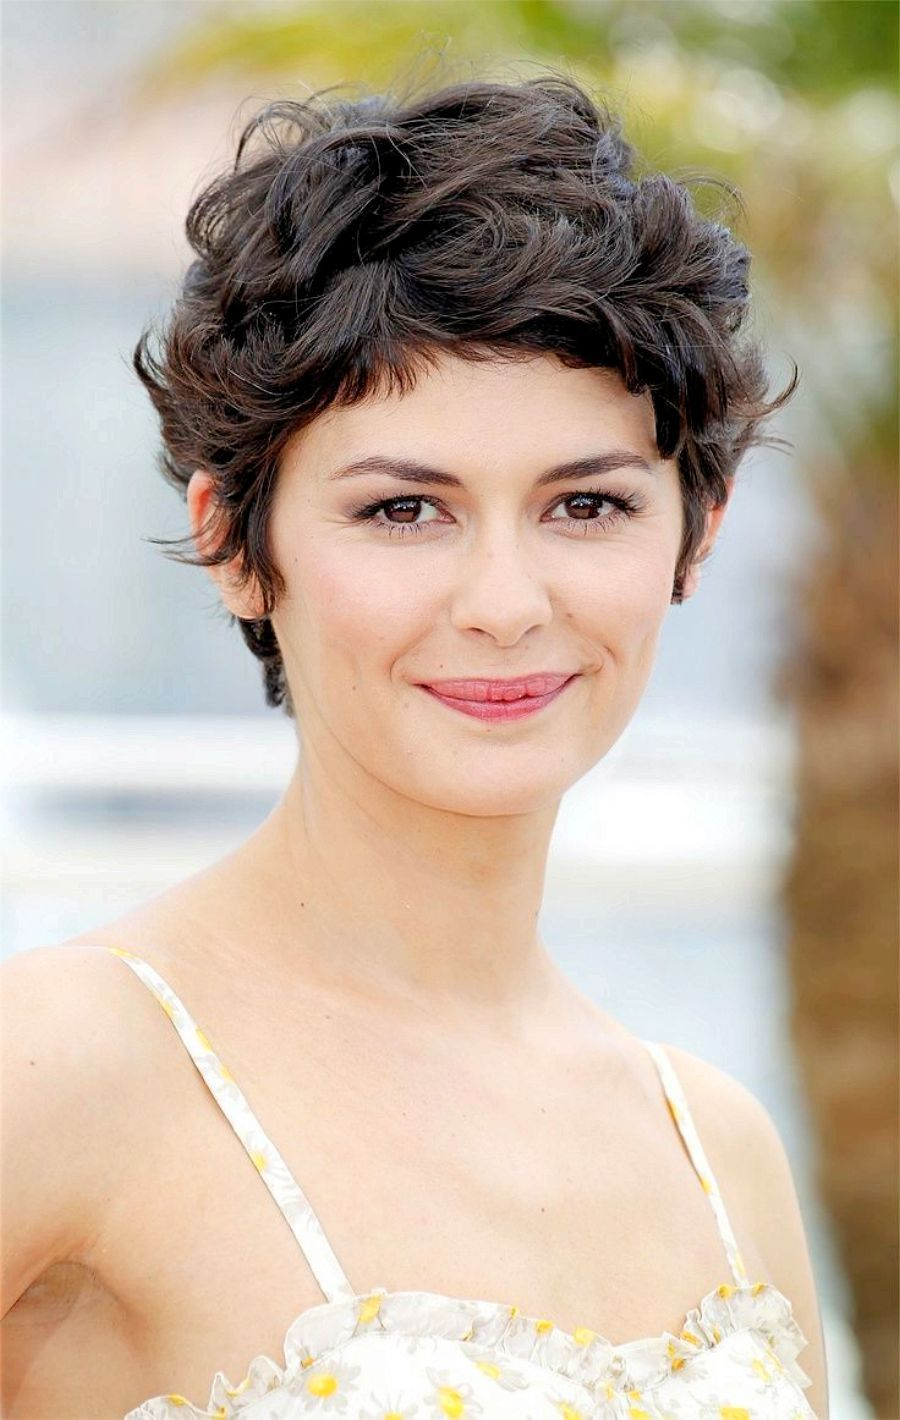 Curly Pixie Haircut Hairstyles Curly Pixie Hairstyles Curly